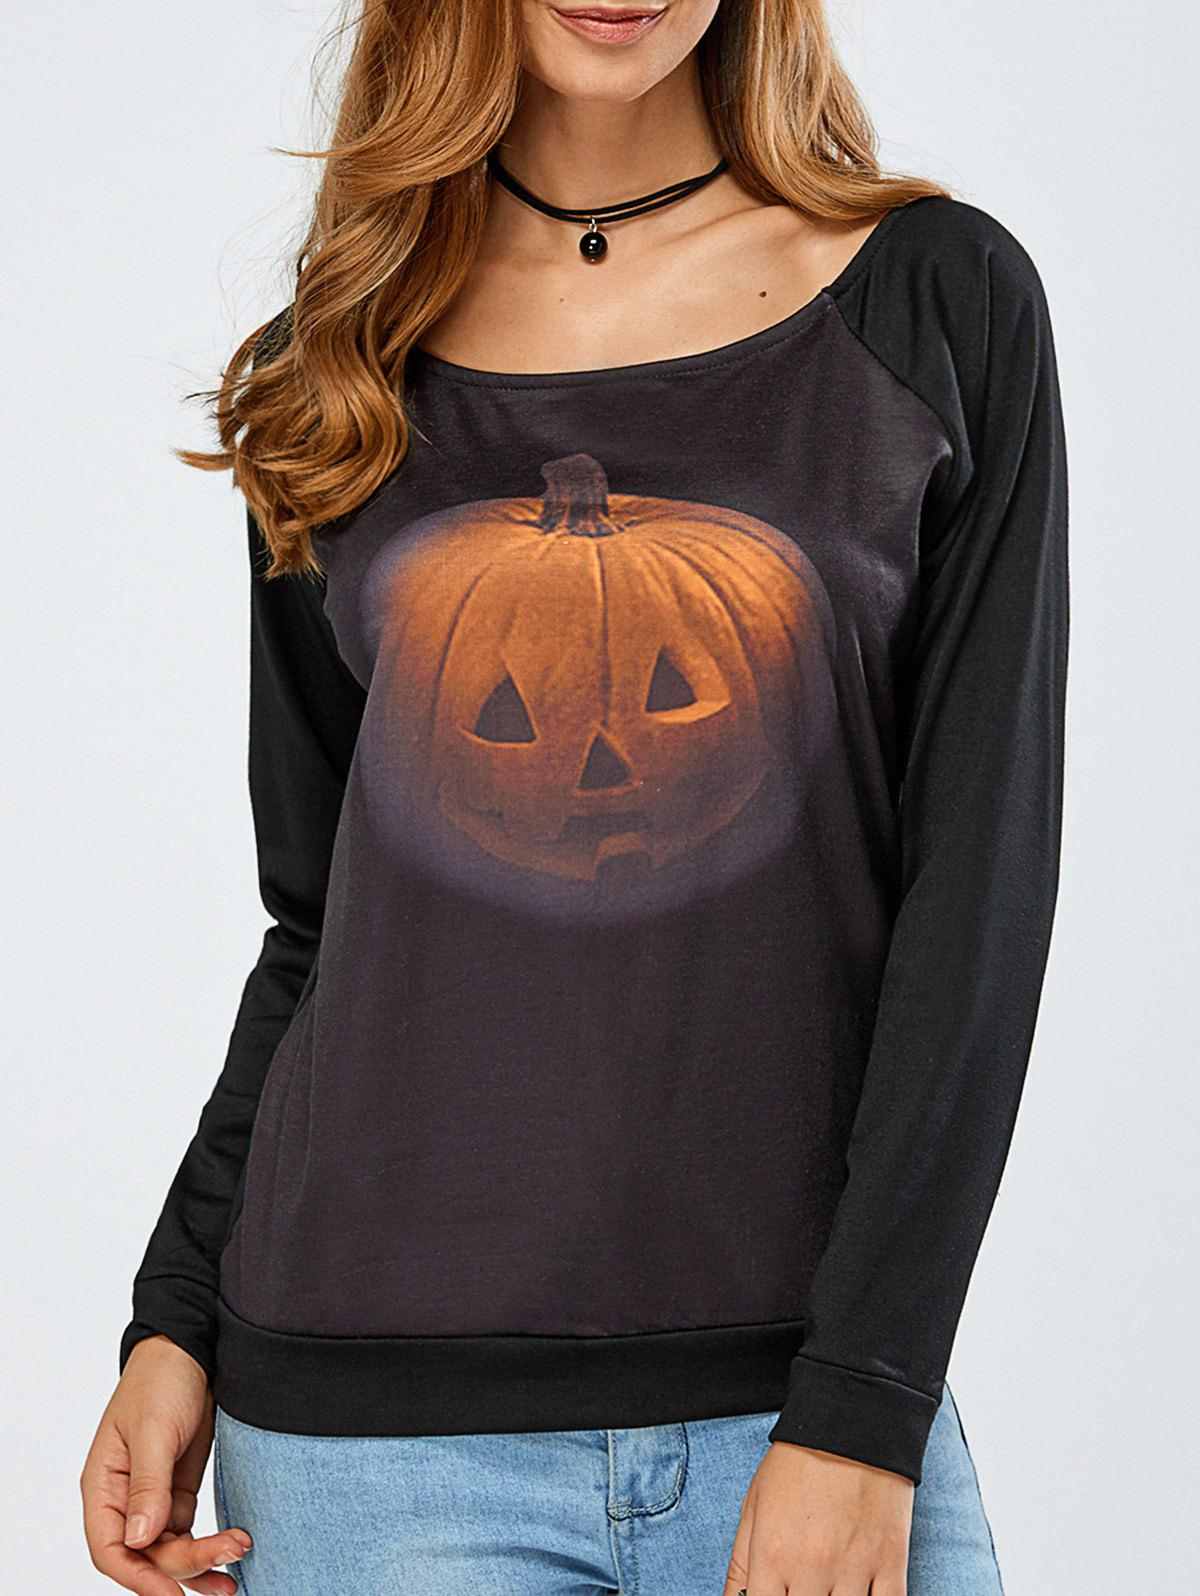 Patchwork Halloween Pumpkin Print Sweatshirt new usp 4484038 0p 29 8 4 inch touch screen post 8 4 inch resistive touch panel for industry applications